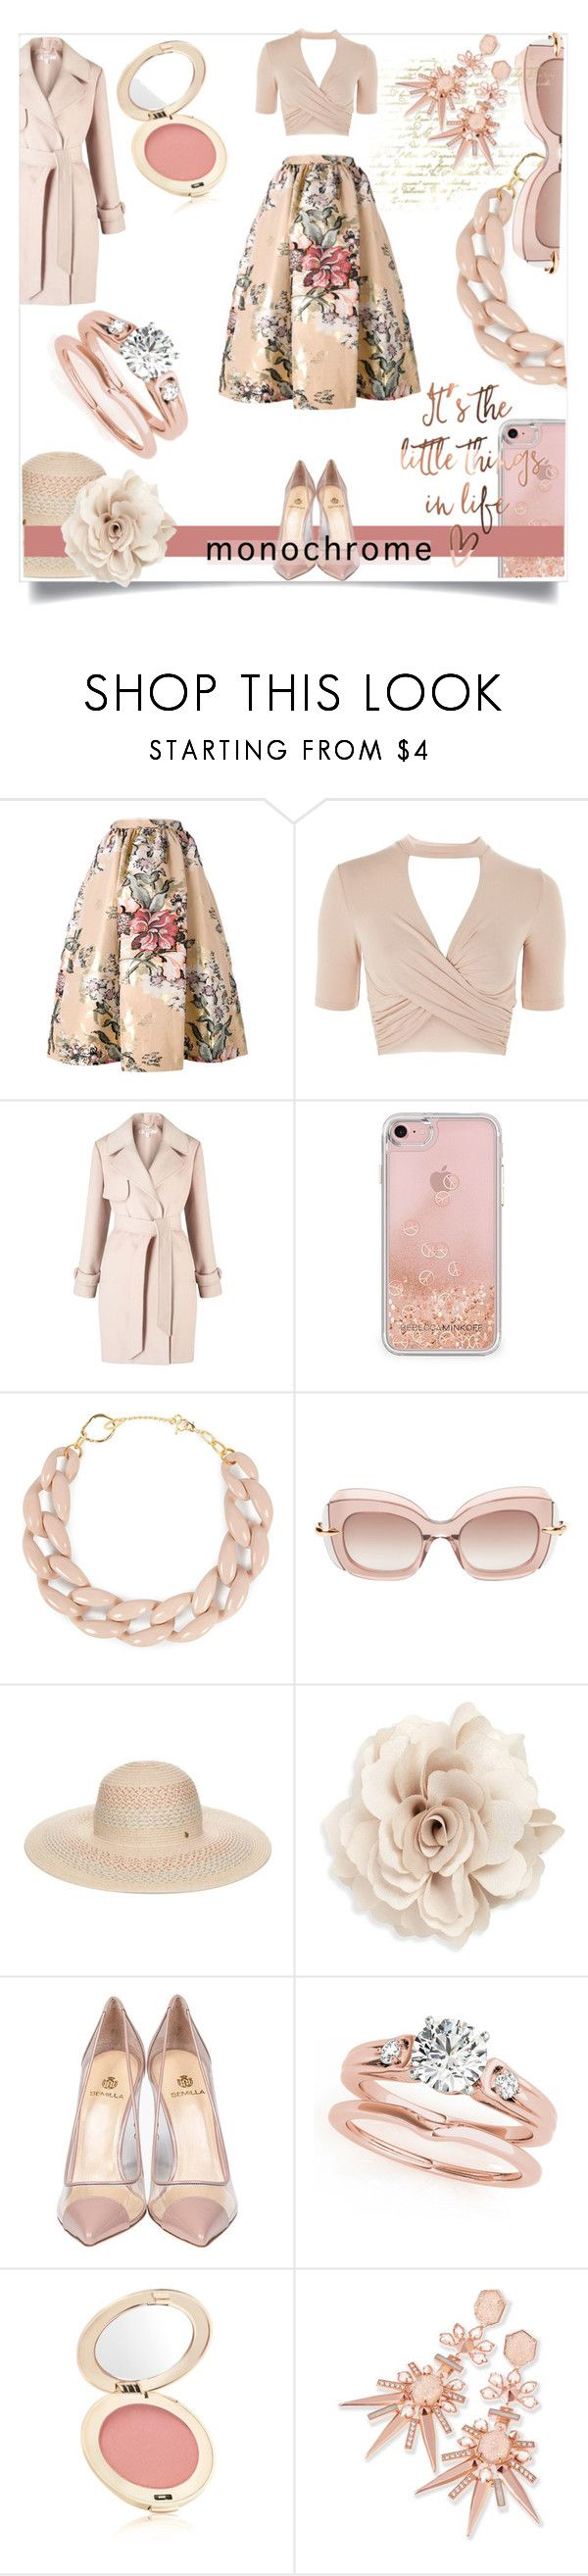 """Color Me Pretty: Head-to-Toe Pink"" by kari-c ❤ liked on Polyvore featuring Fendi, Topshop, Miss Selfridge, Rebecca Minkoff, DIANA BROUSSARD, Pomellato, BCBGeneration, Cara, Semilla and Jane Iredale"